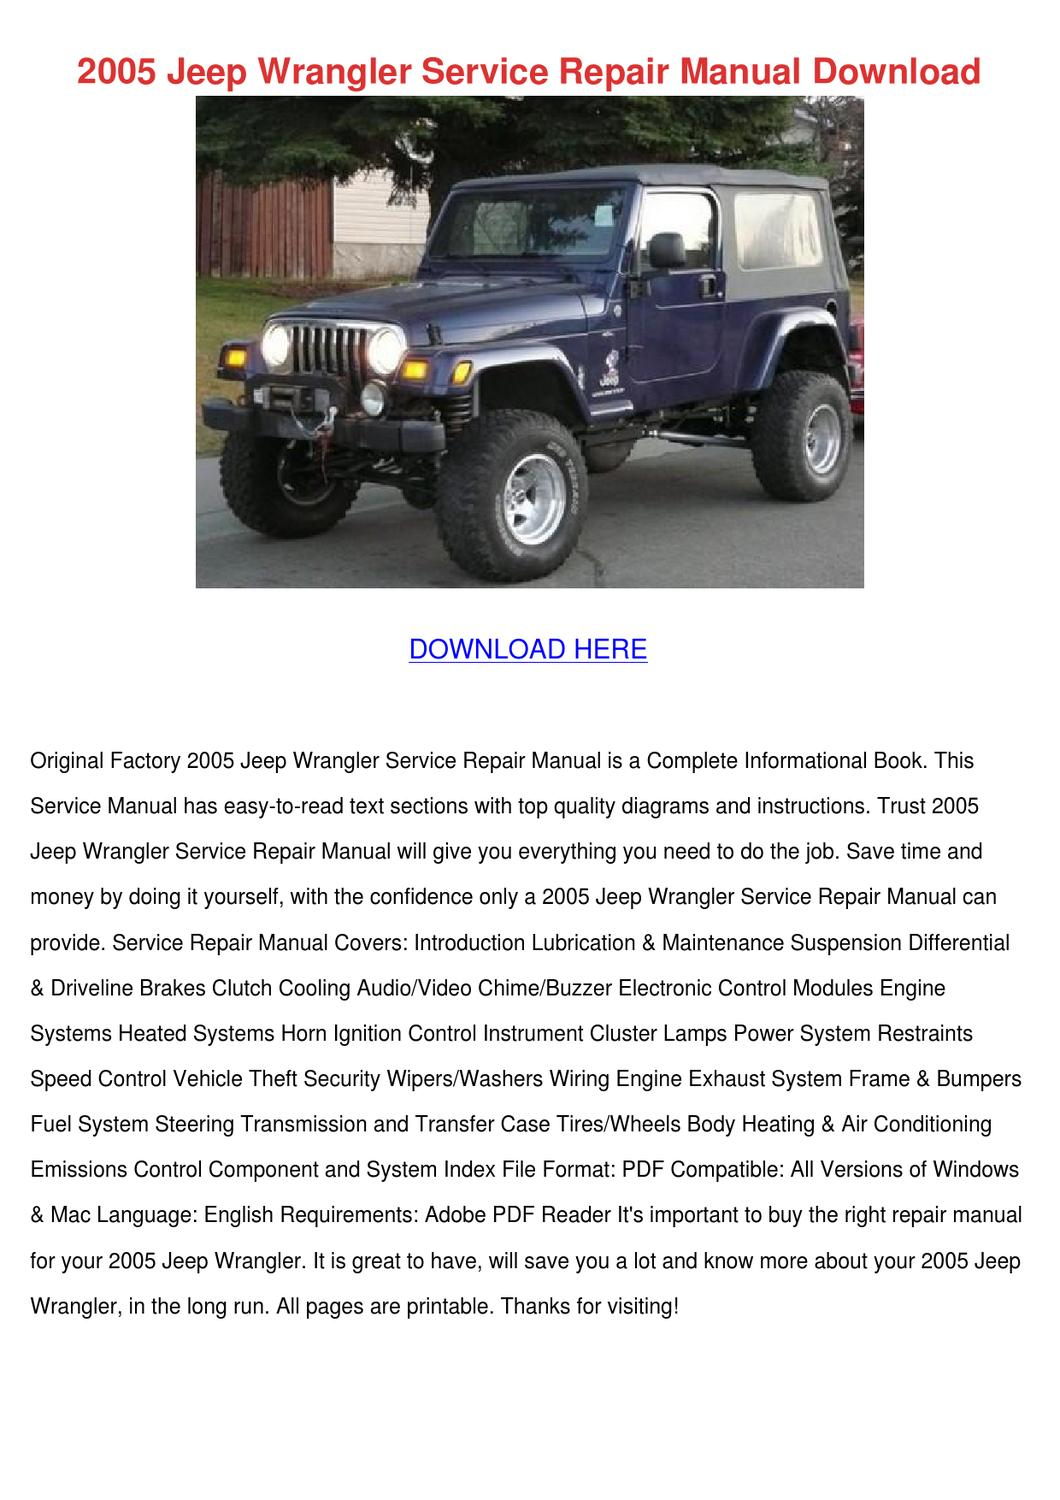 2005 Jeep Wrangler Service Repair Manual Down By